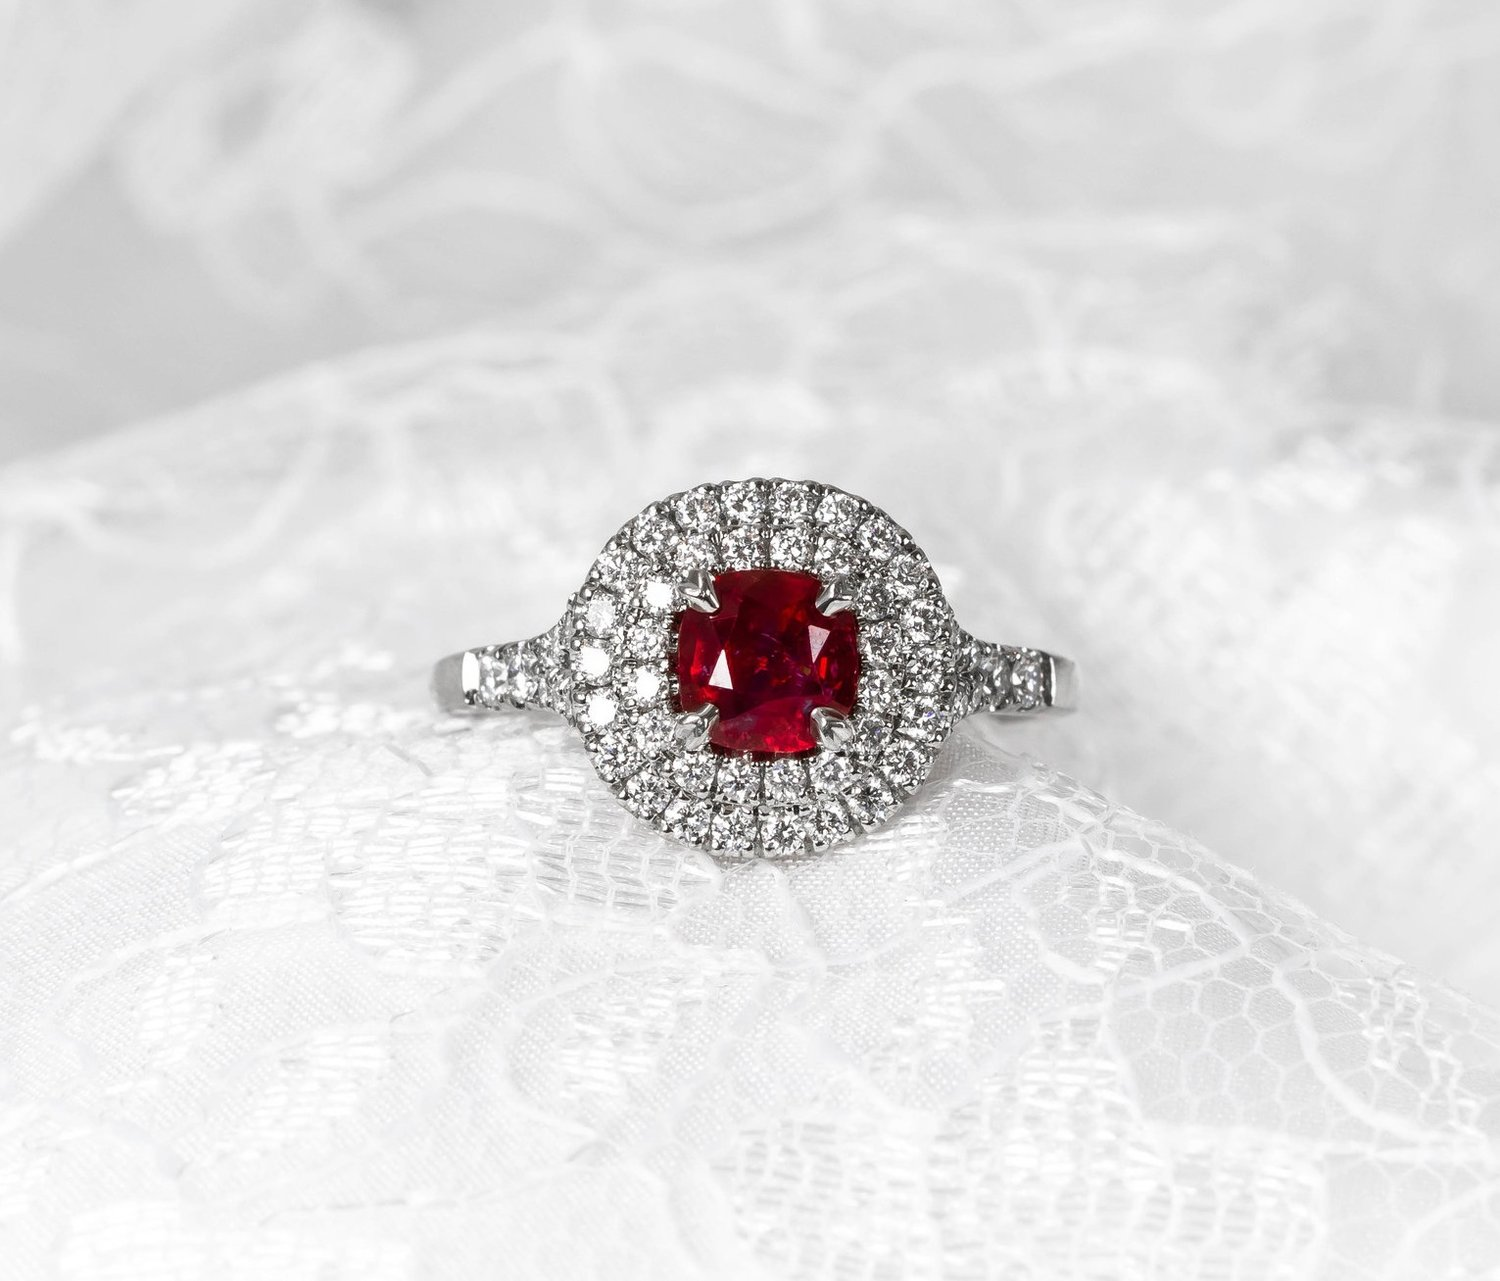 550cb29d4e147 Rubies, Pink Sapphires and similar shades. — Timothy Roe